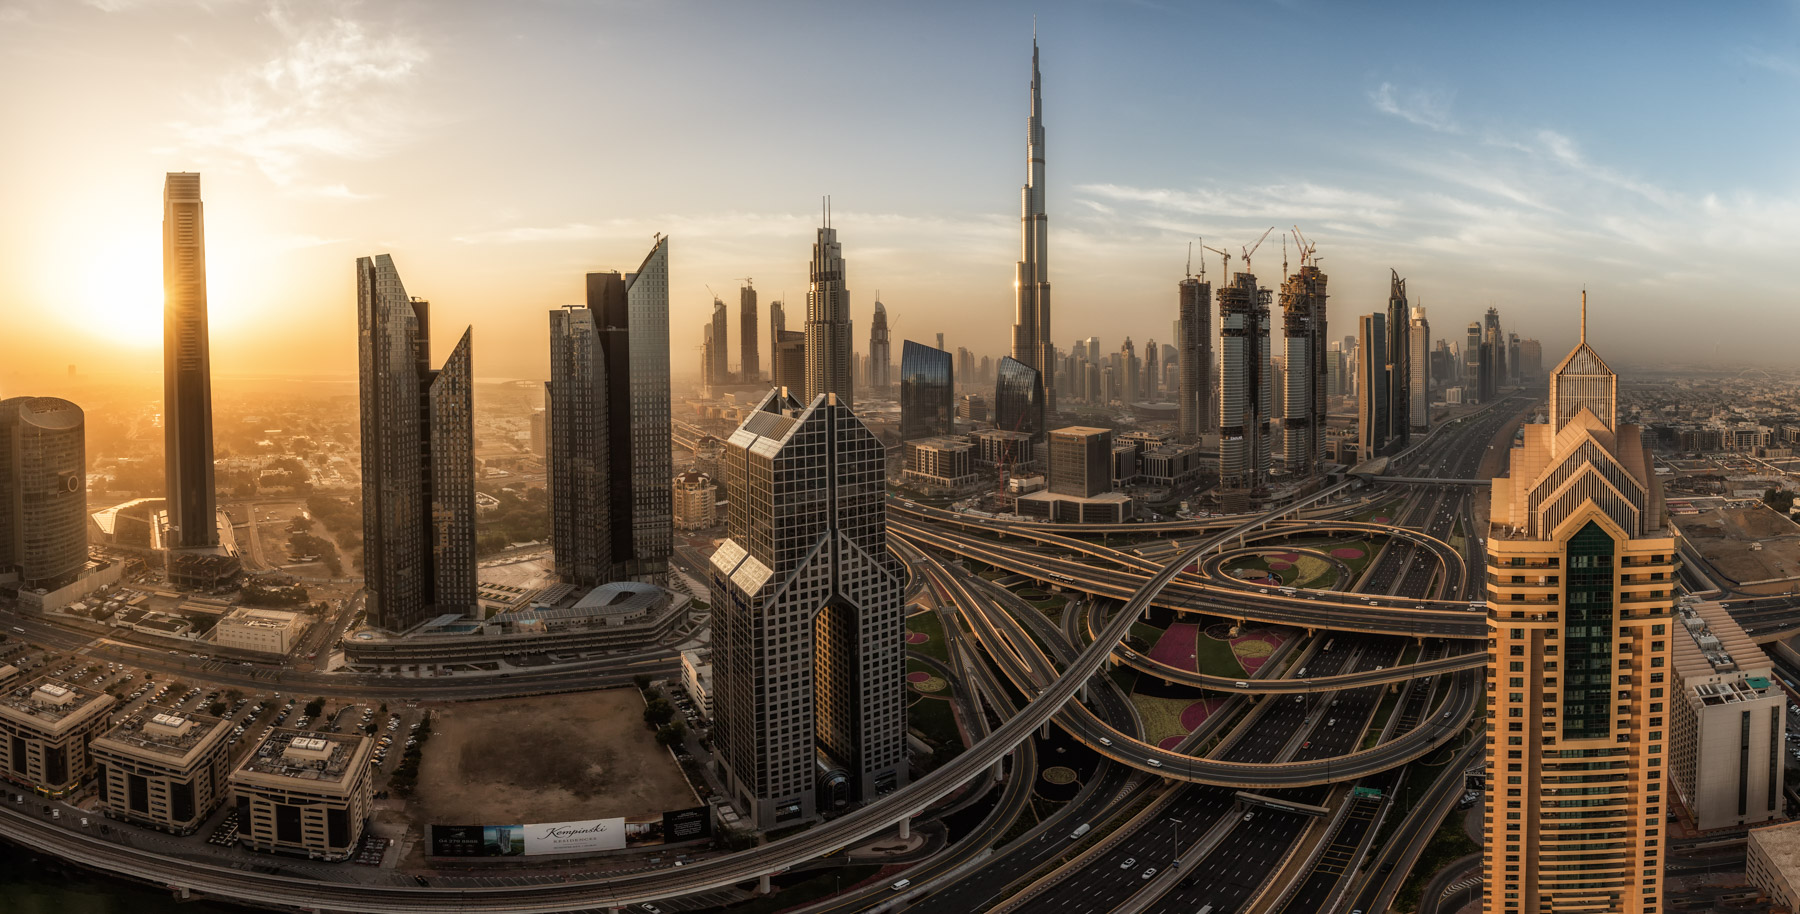 Skyline in Dubai during Sunrise.